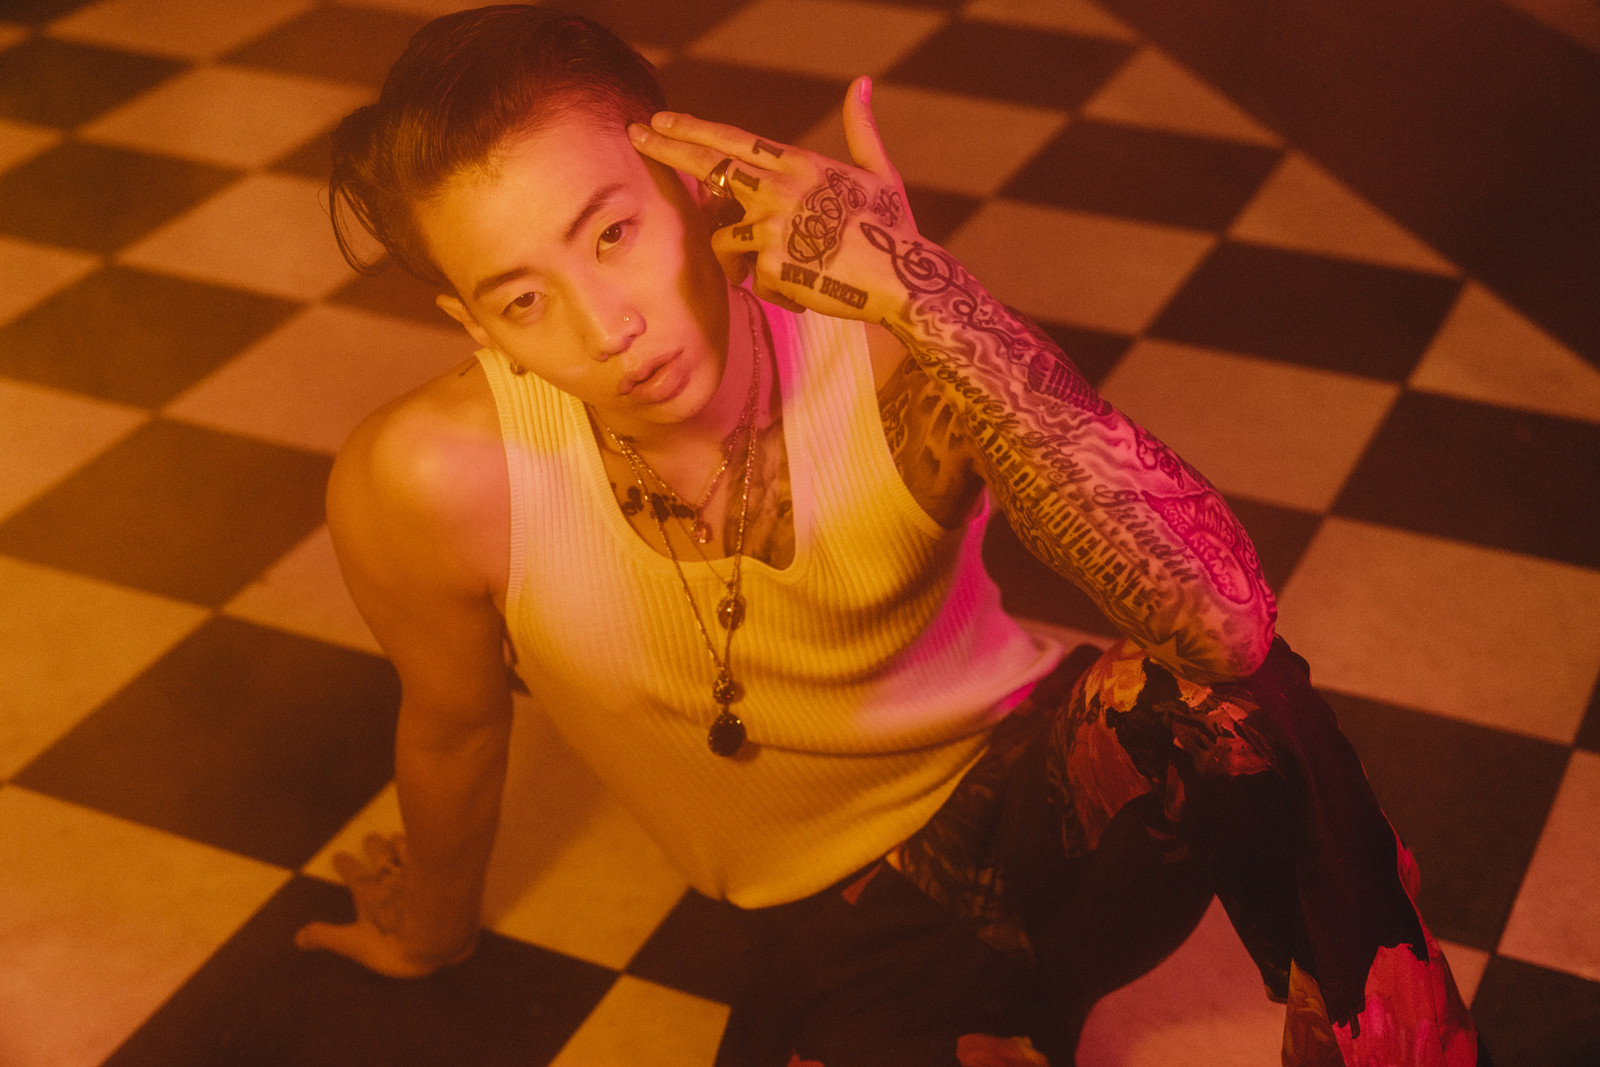 Jay Park 'Soju' ft. 2 Chainz Interview 2018